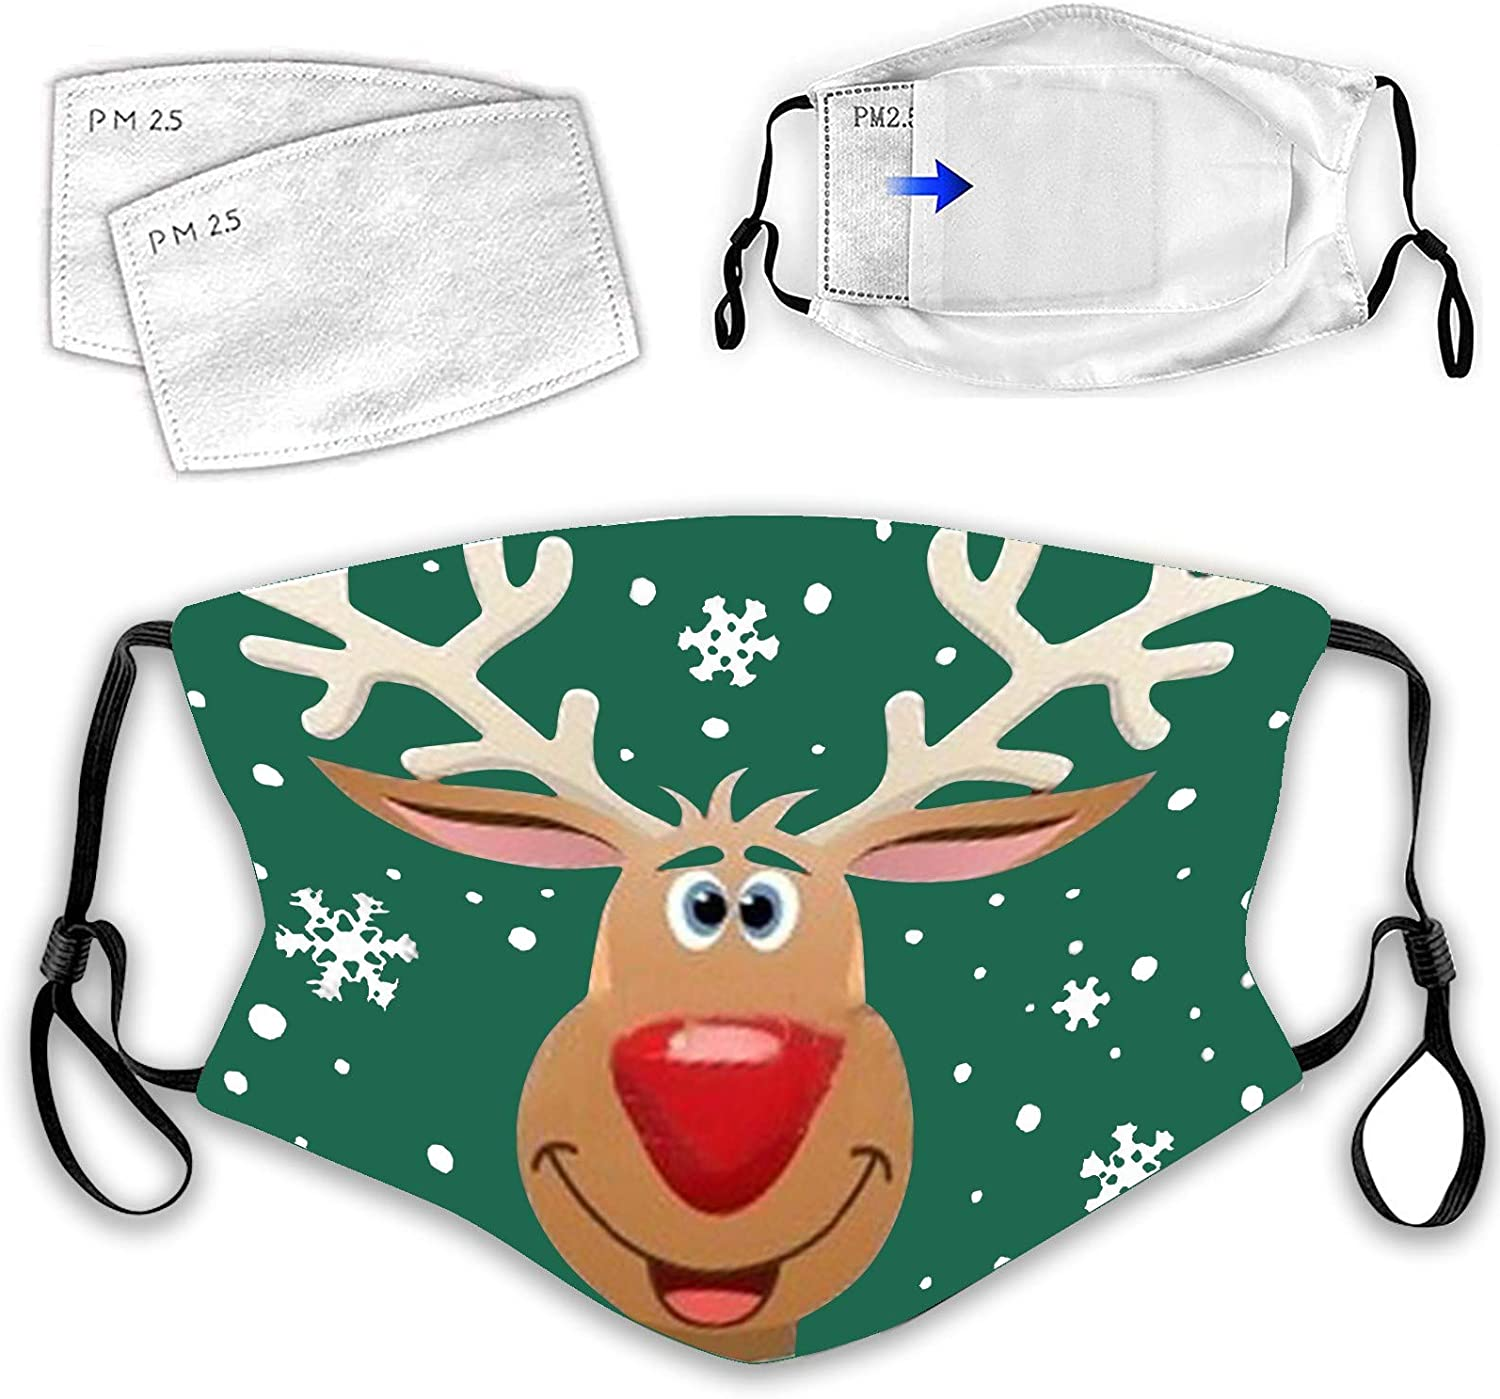 Unisex Christmas mask Face Mask Reusable Printing Mask Funny mask 1pc for Glowing Nightclub Party 1pc mask + 2pc filter